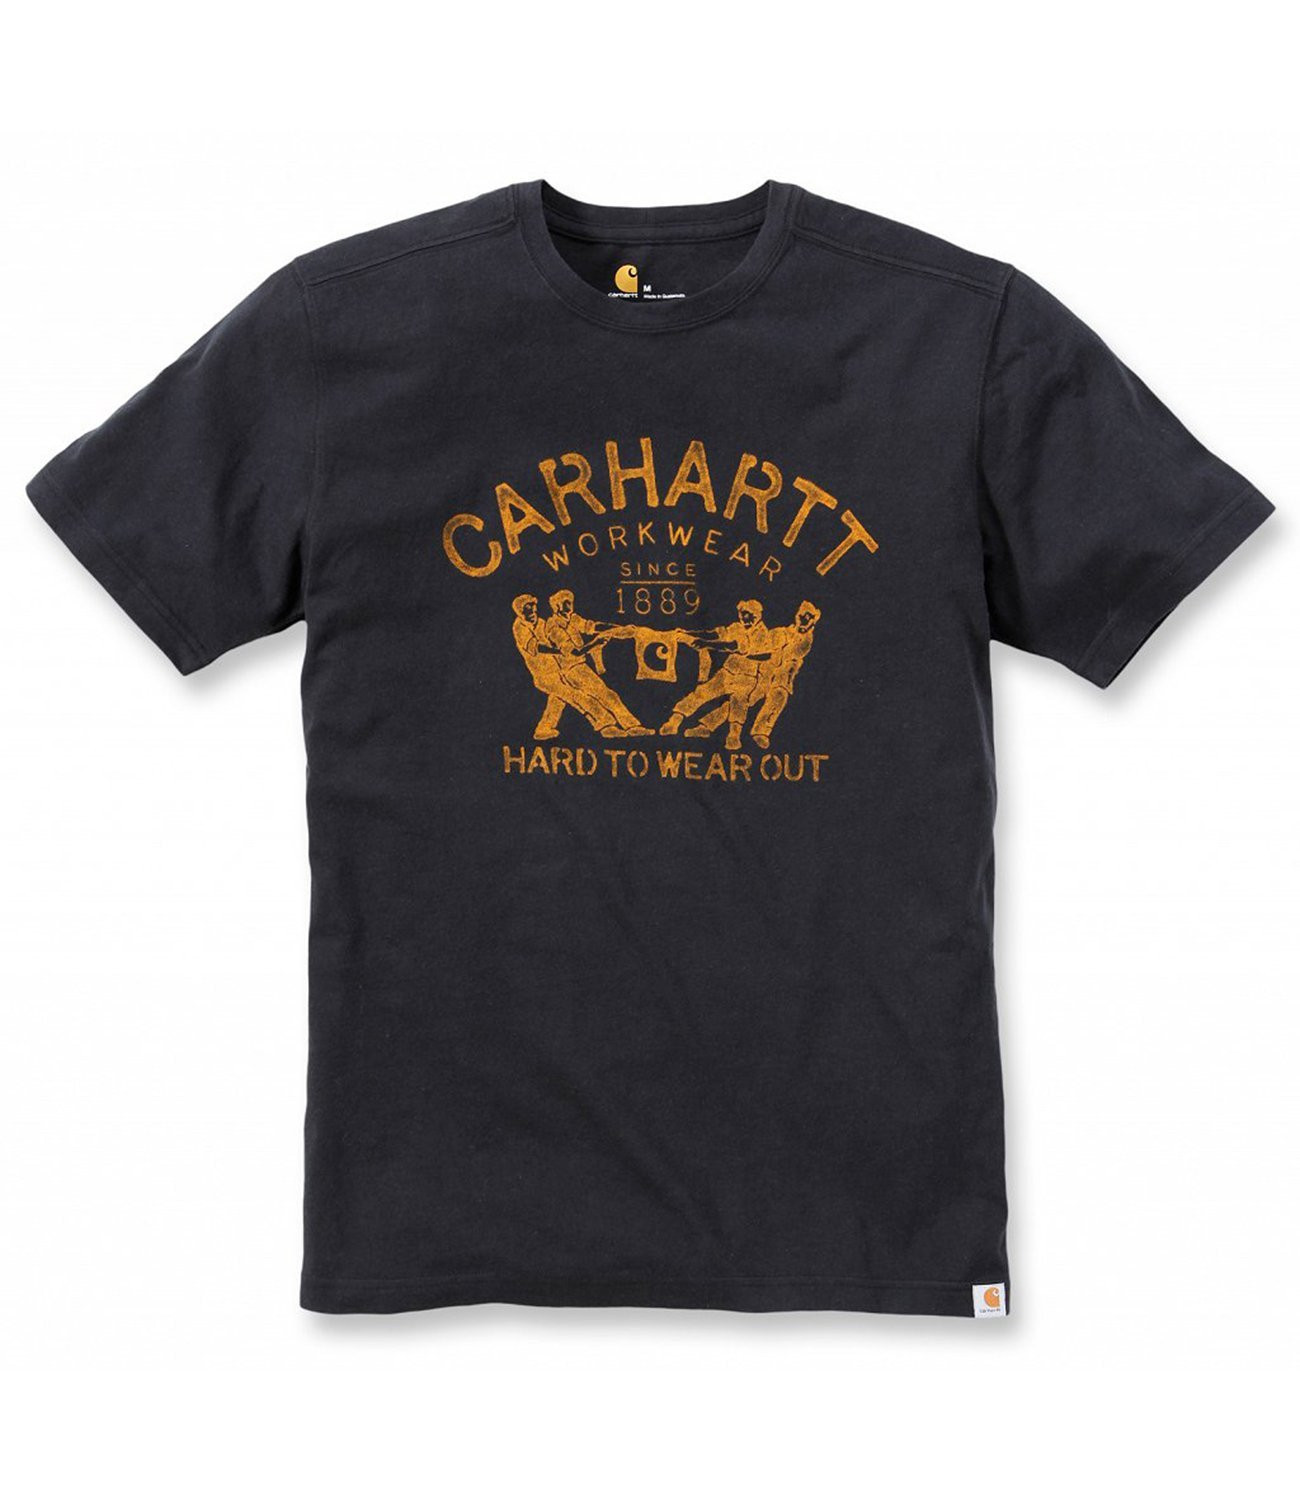 Футболка Carhartt Hard To Wear Out Graphic T-Shirt S/S - 102097 (Black, M)